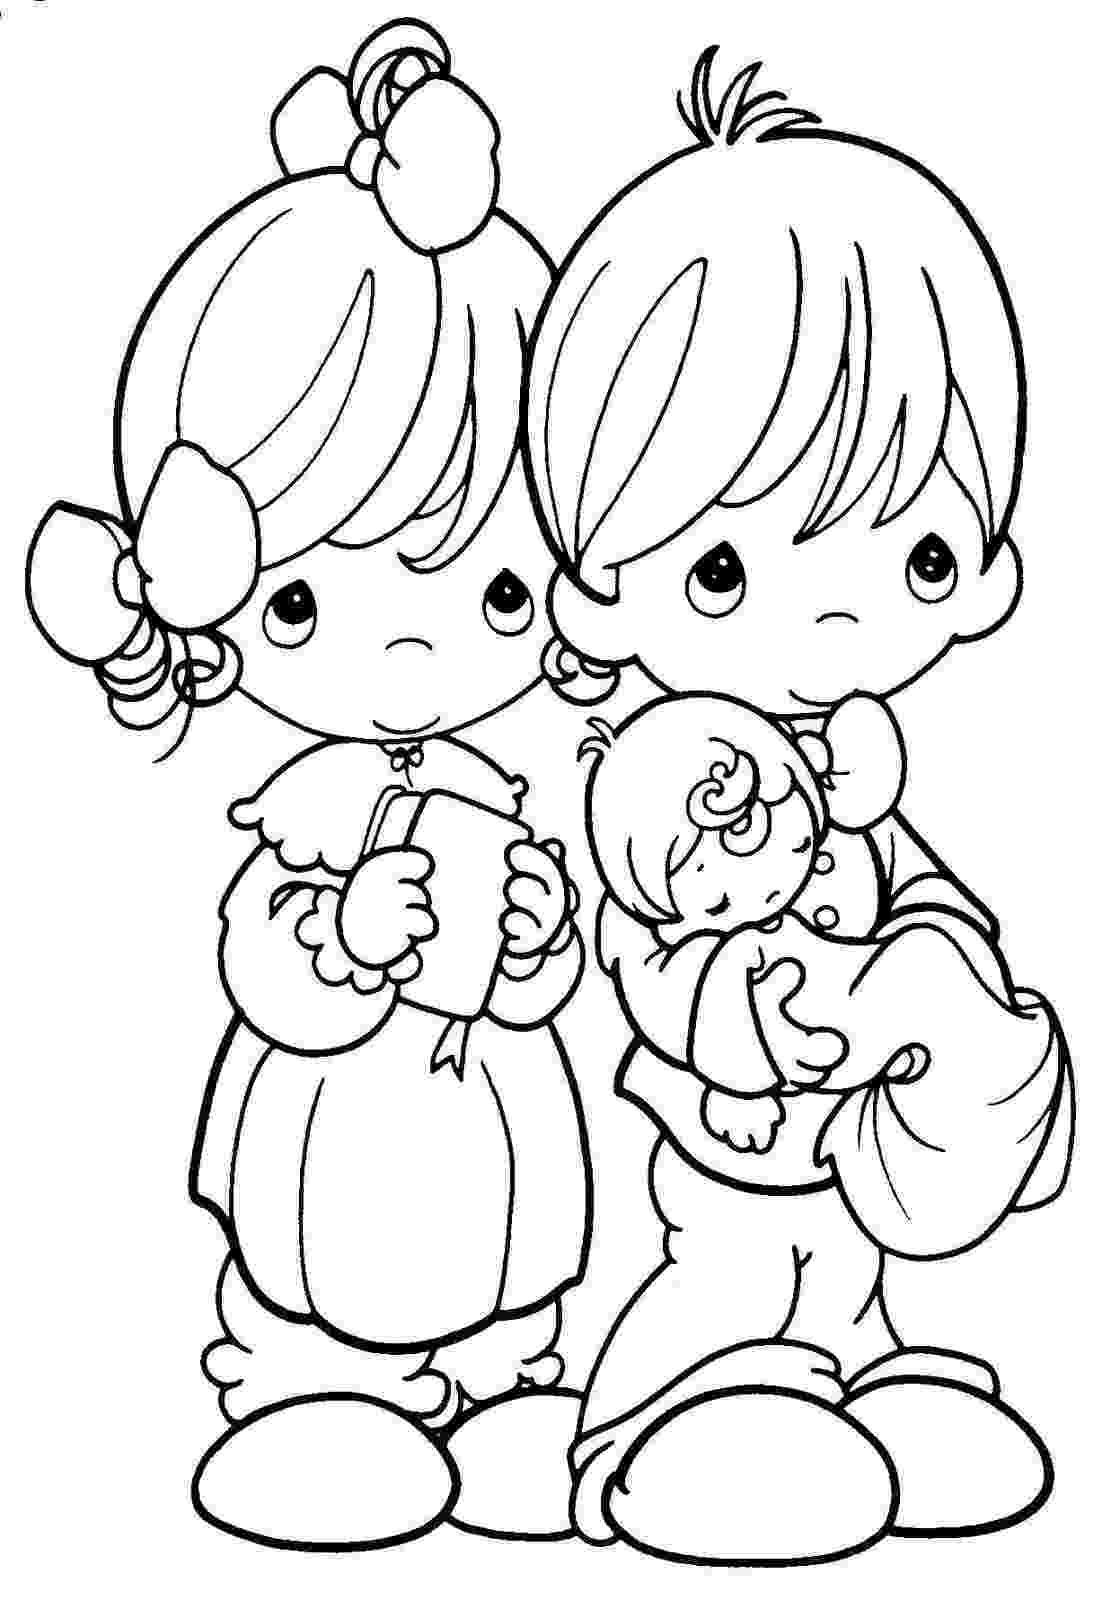 precious moments coloring books precious moments for love coloring pages gtgt disney coloring books moments precious